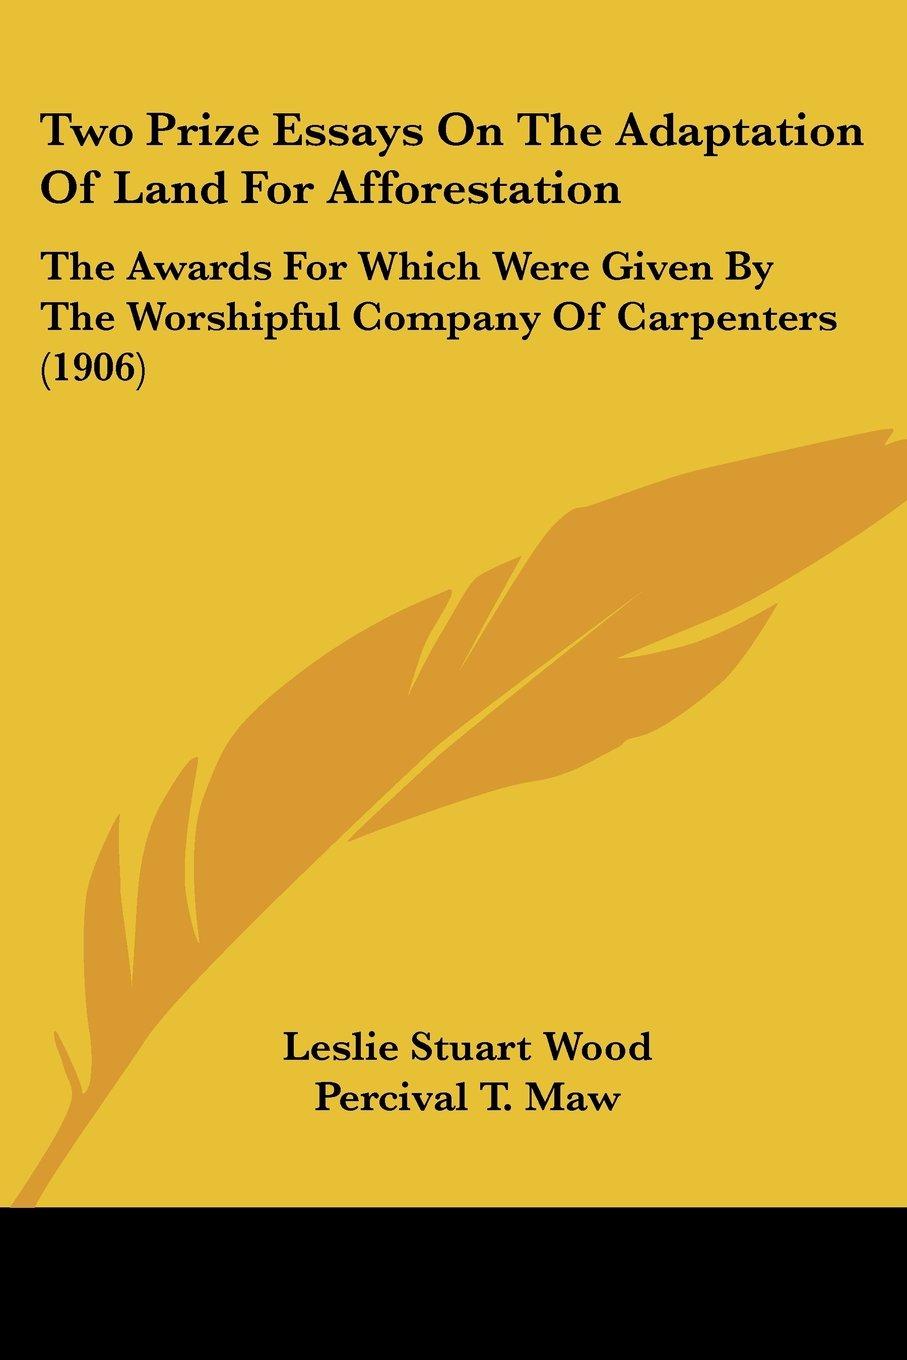 Read Online Two Prize Essays On The Adaptation Of Land For Afforestation: The Awards For Which Were Given By The Worshipful Company Of Carpenters (1906) PDF ePub ebook